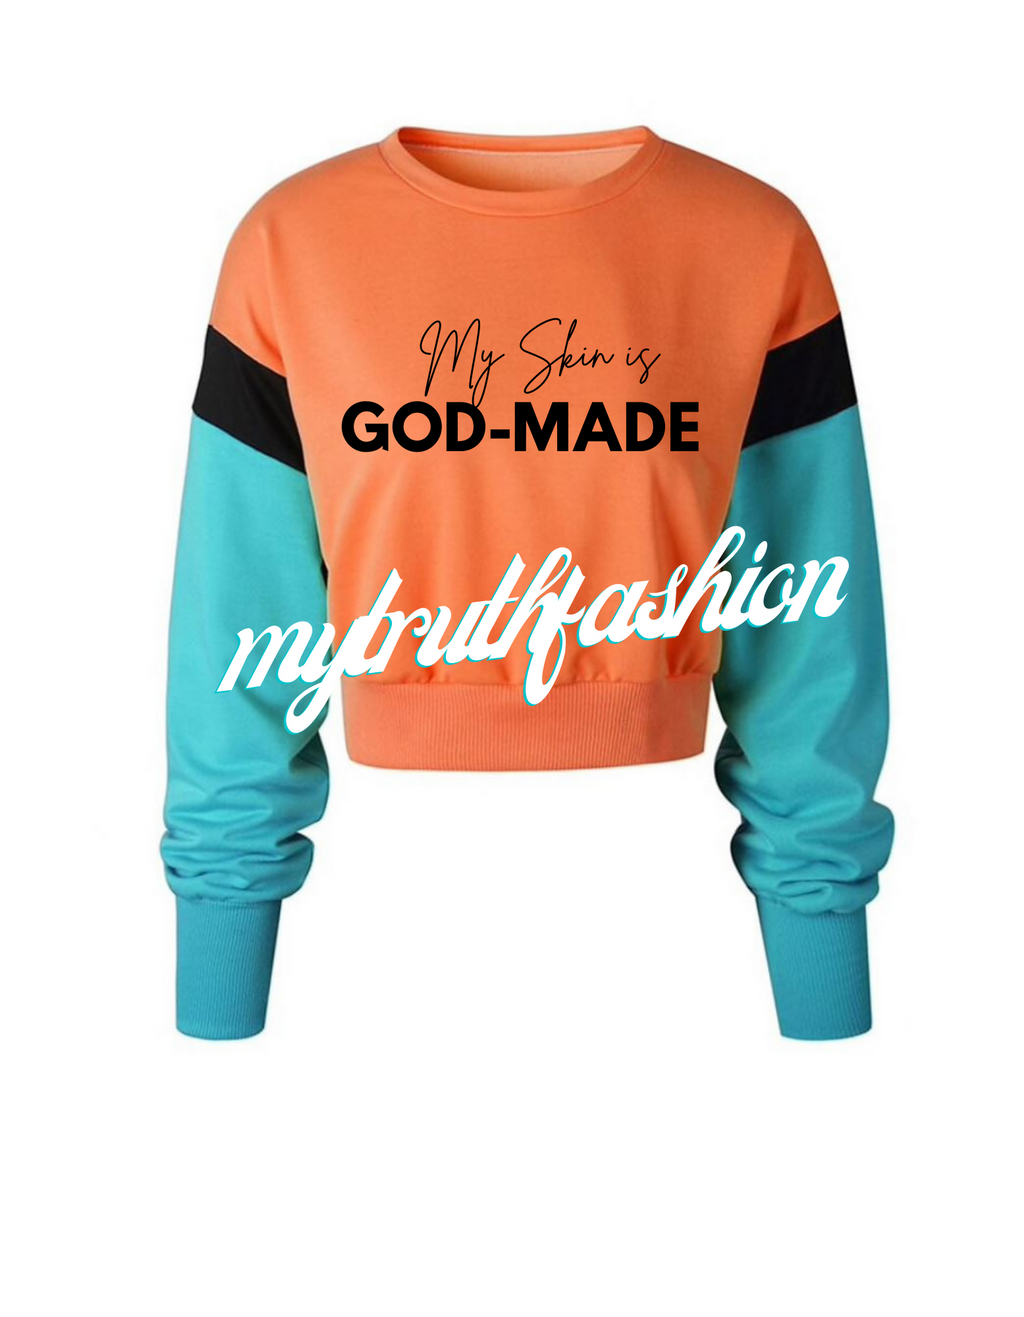 COLORBLOCK CRUSADER CROP SWEATSHIRT